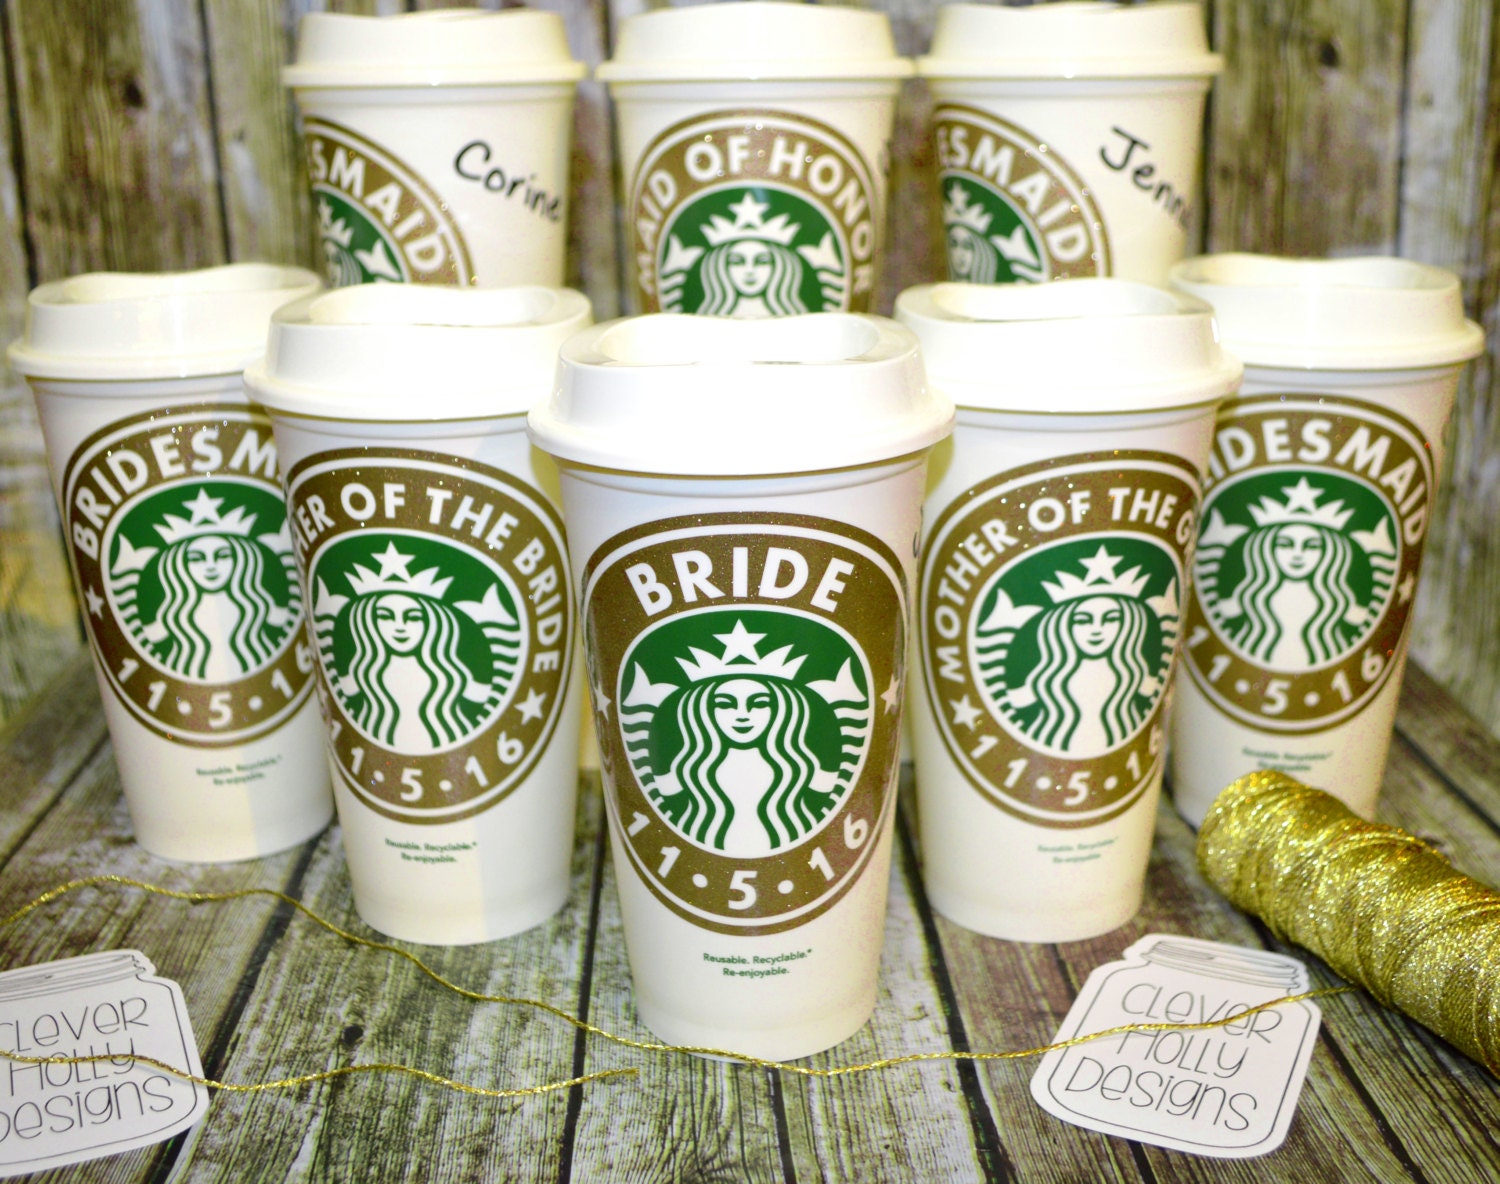 Bridesmaid Gifts Starbucks Coffee Cup with Personalized Name